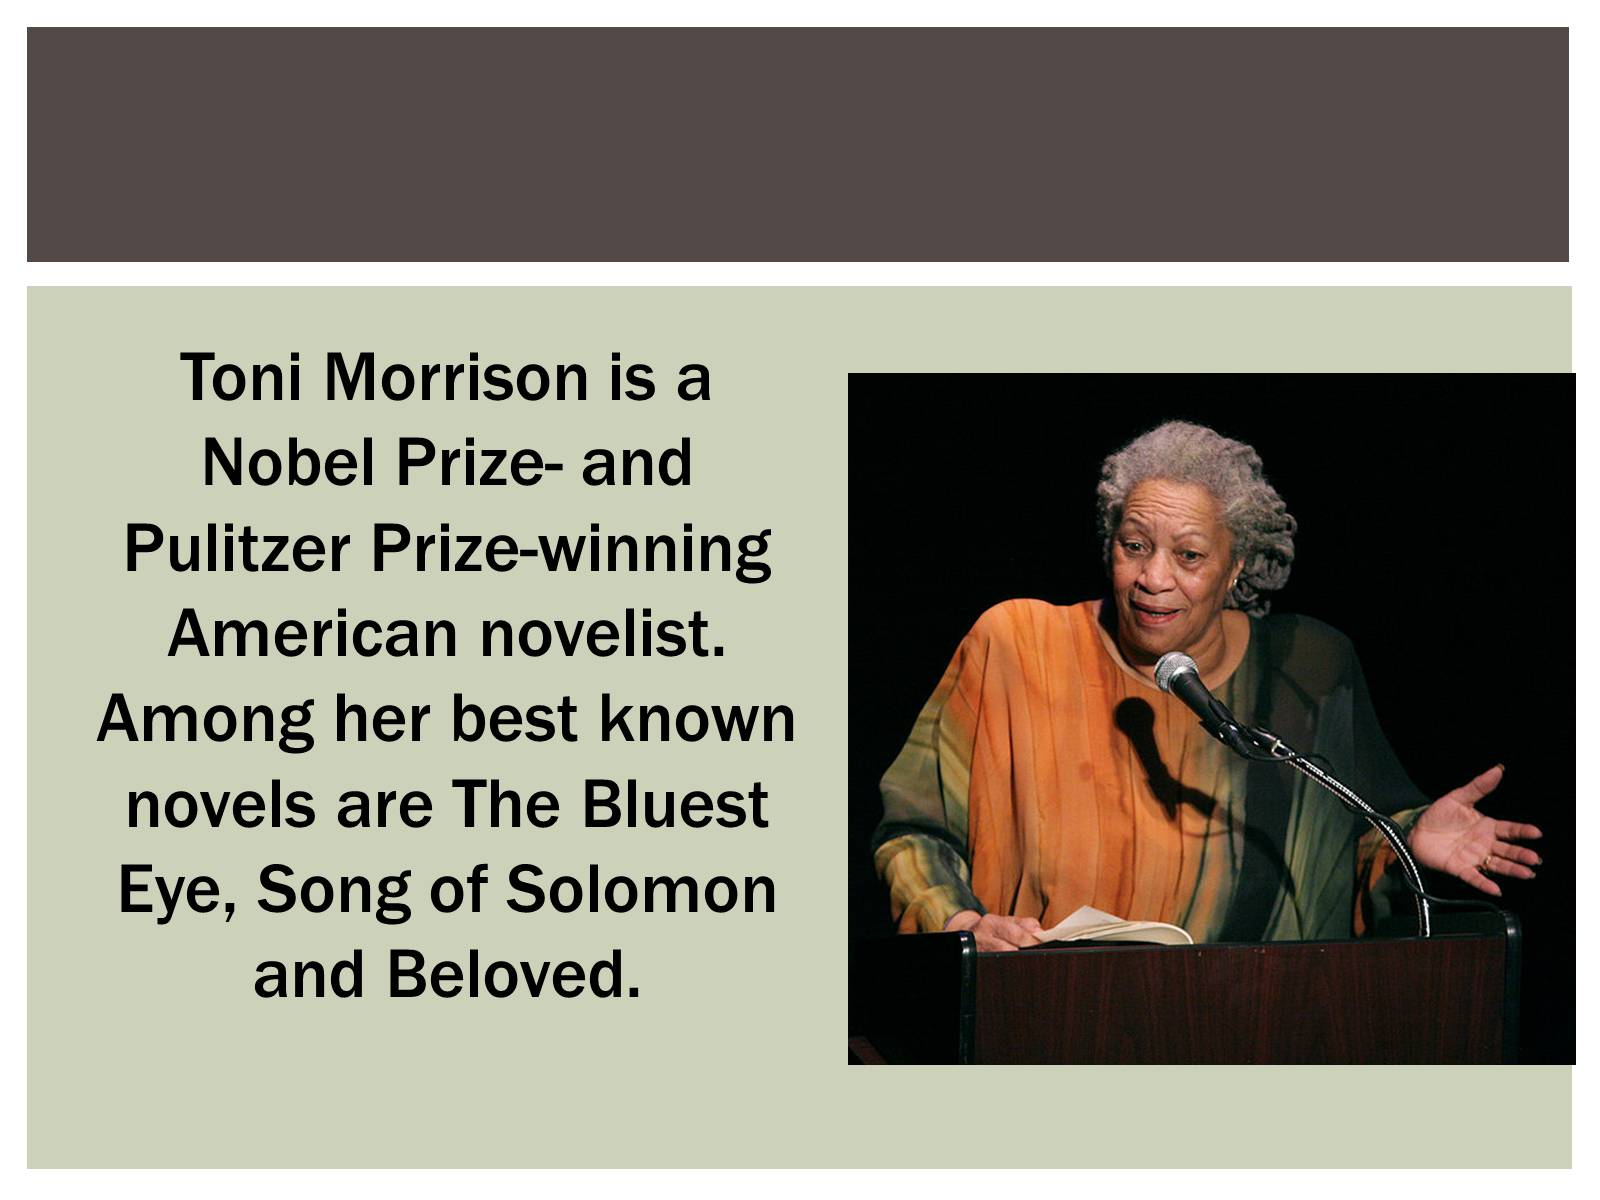 toni morrison novels are known for